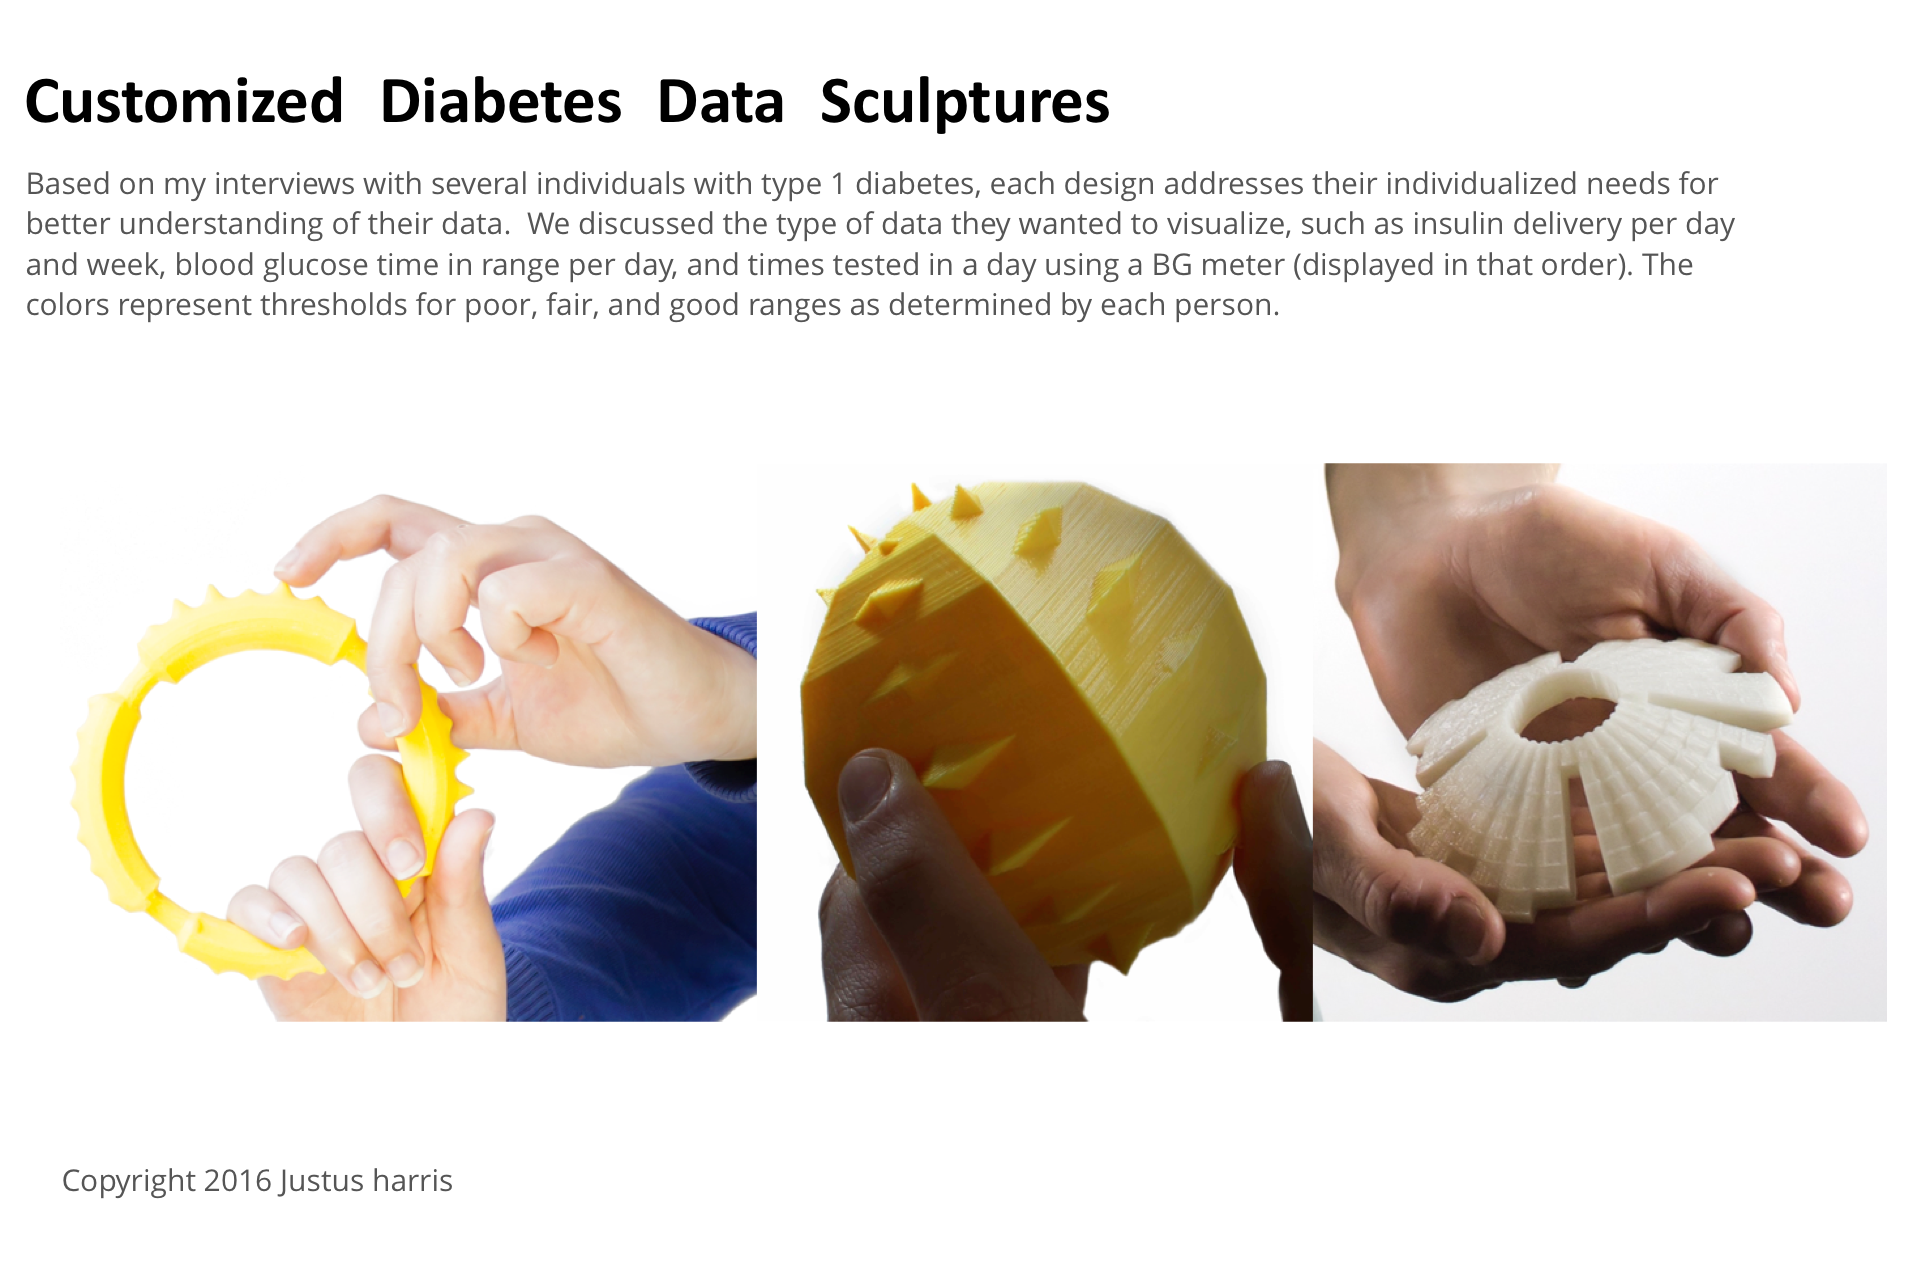 JH Diabetes Data Sculptures